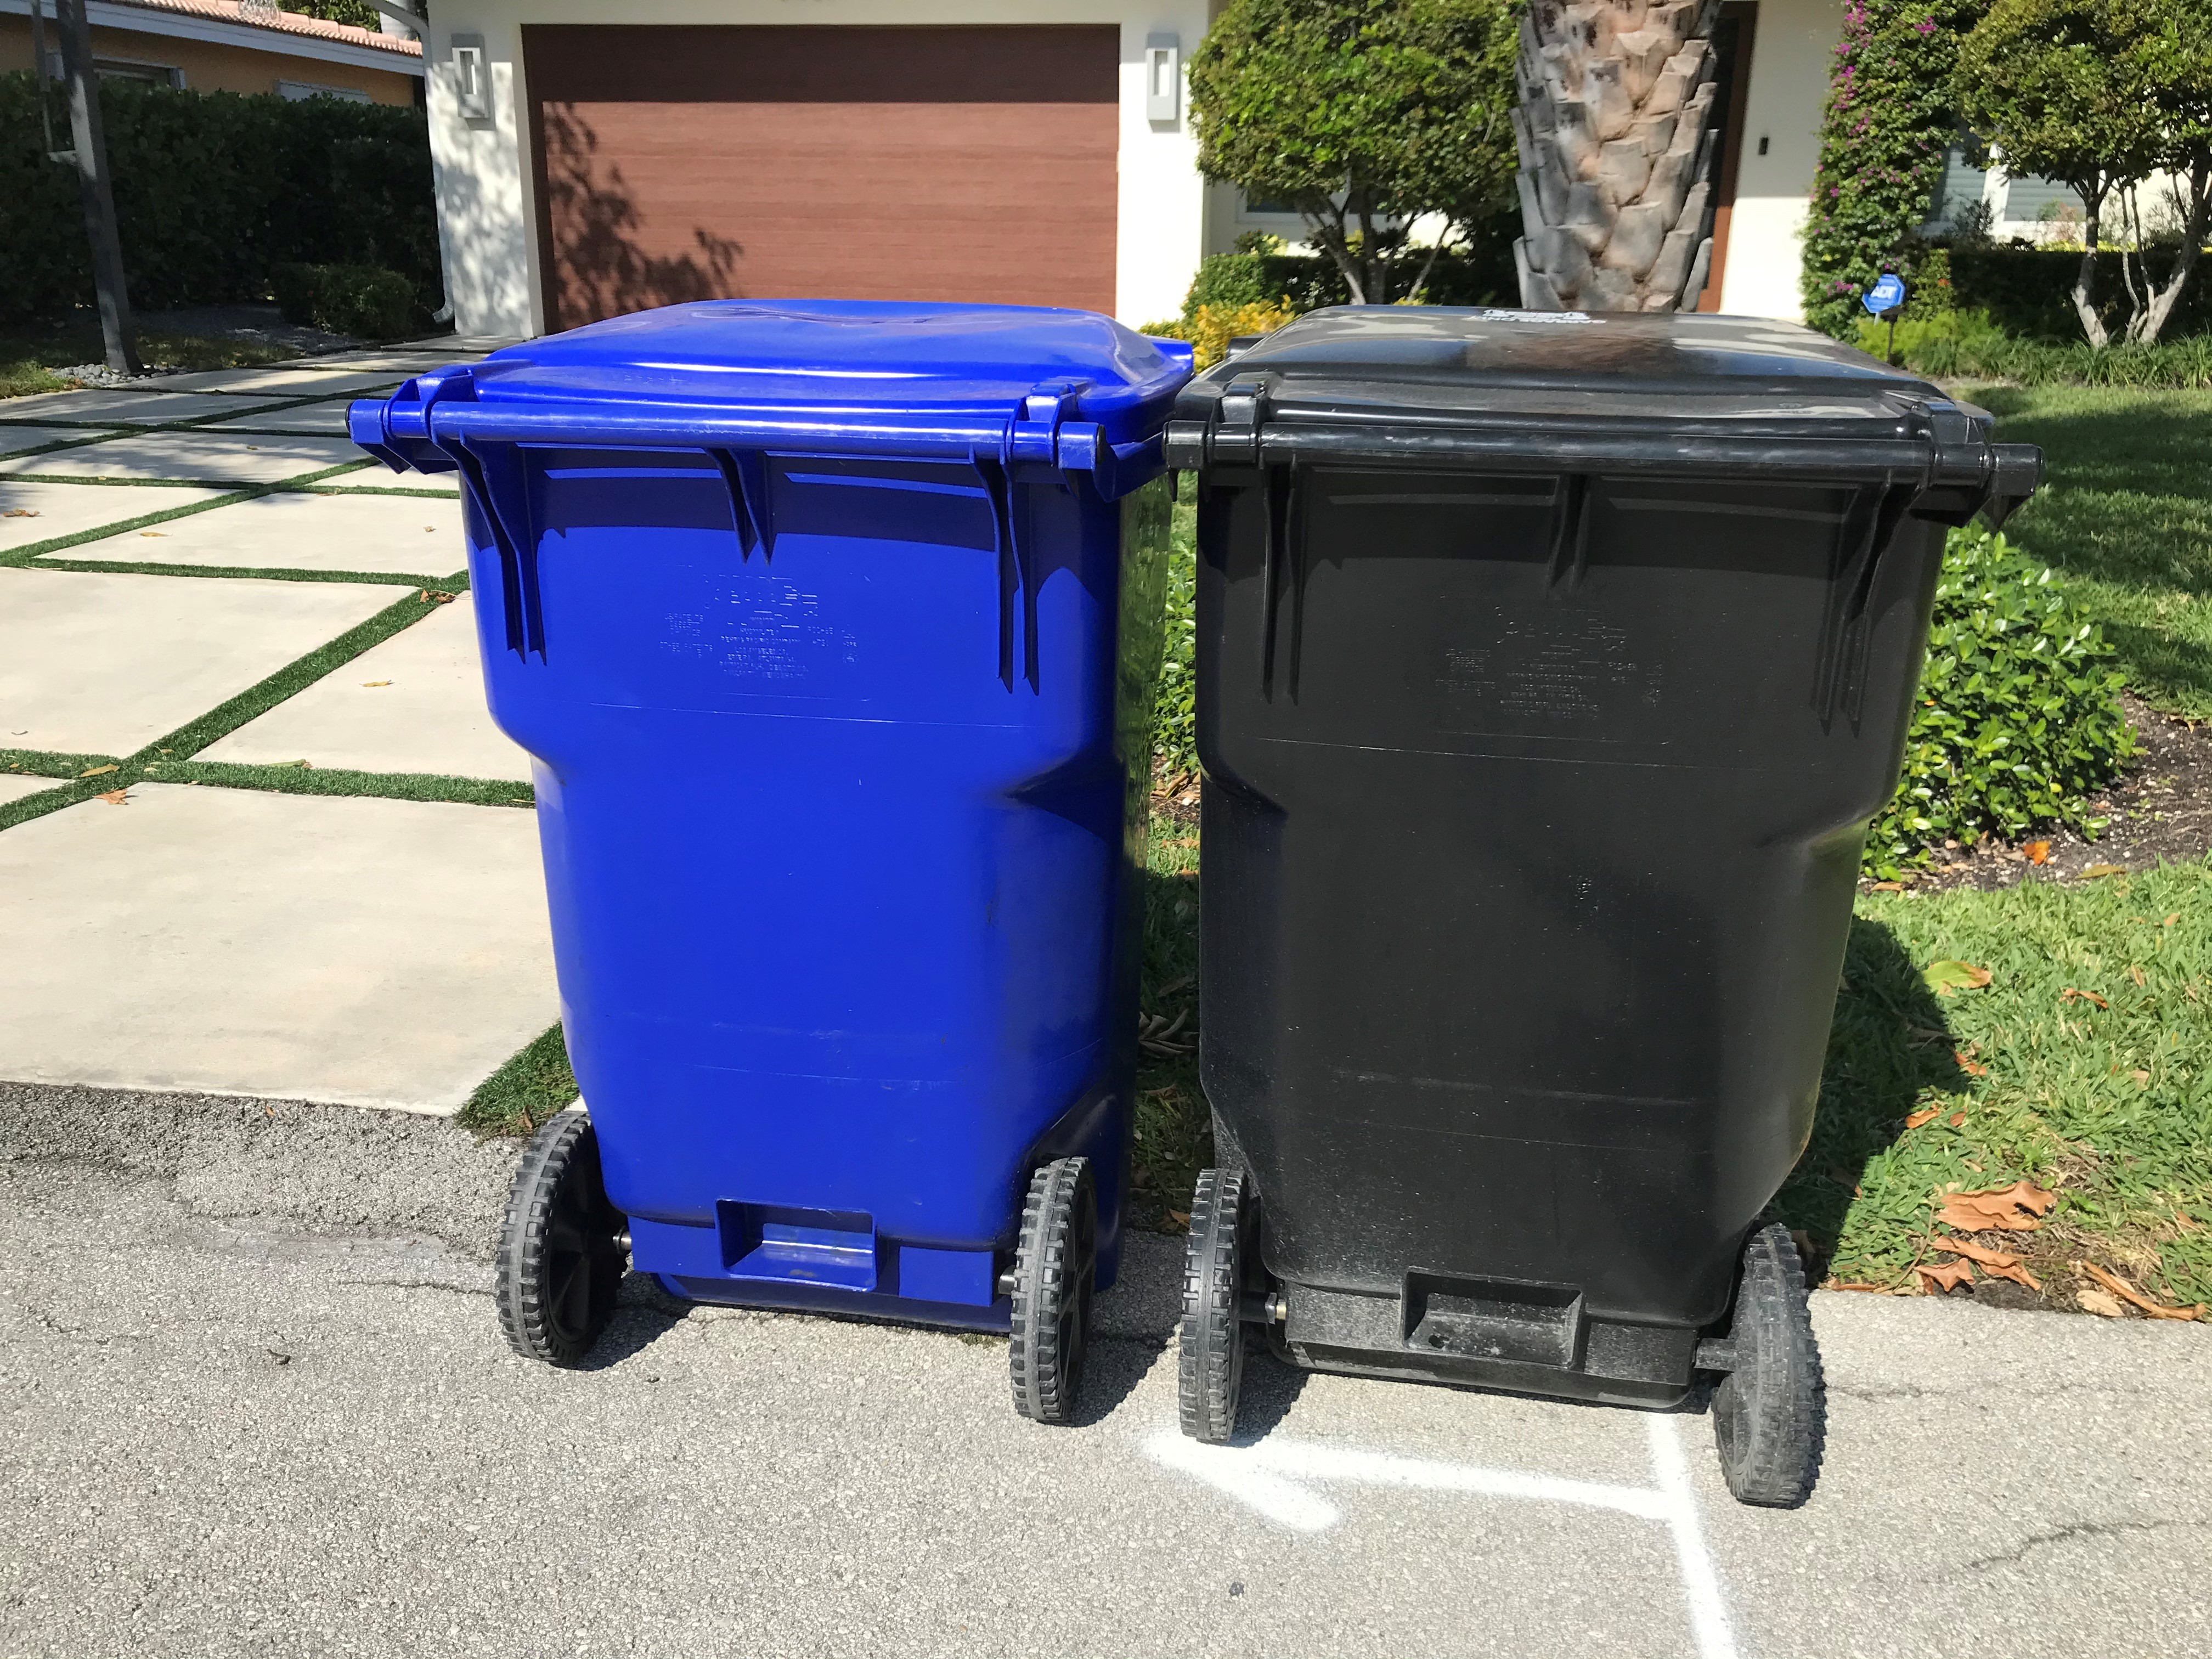 Image of Blue Cart And Black Cart Adjacent To Each Other